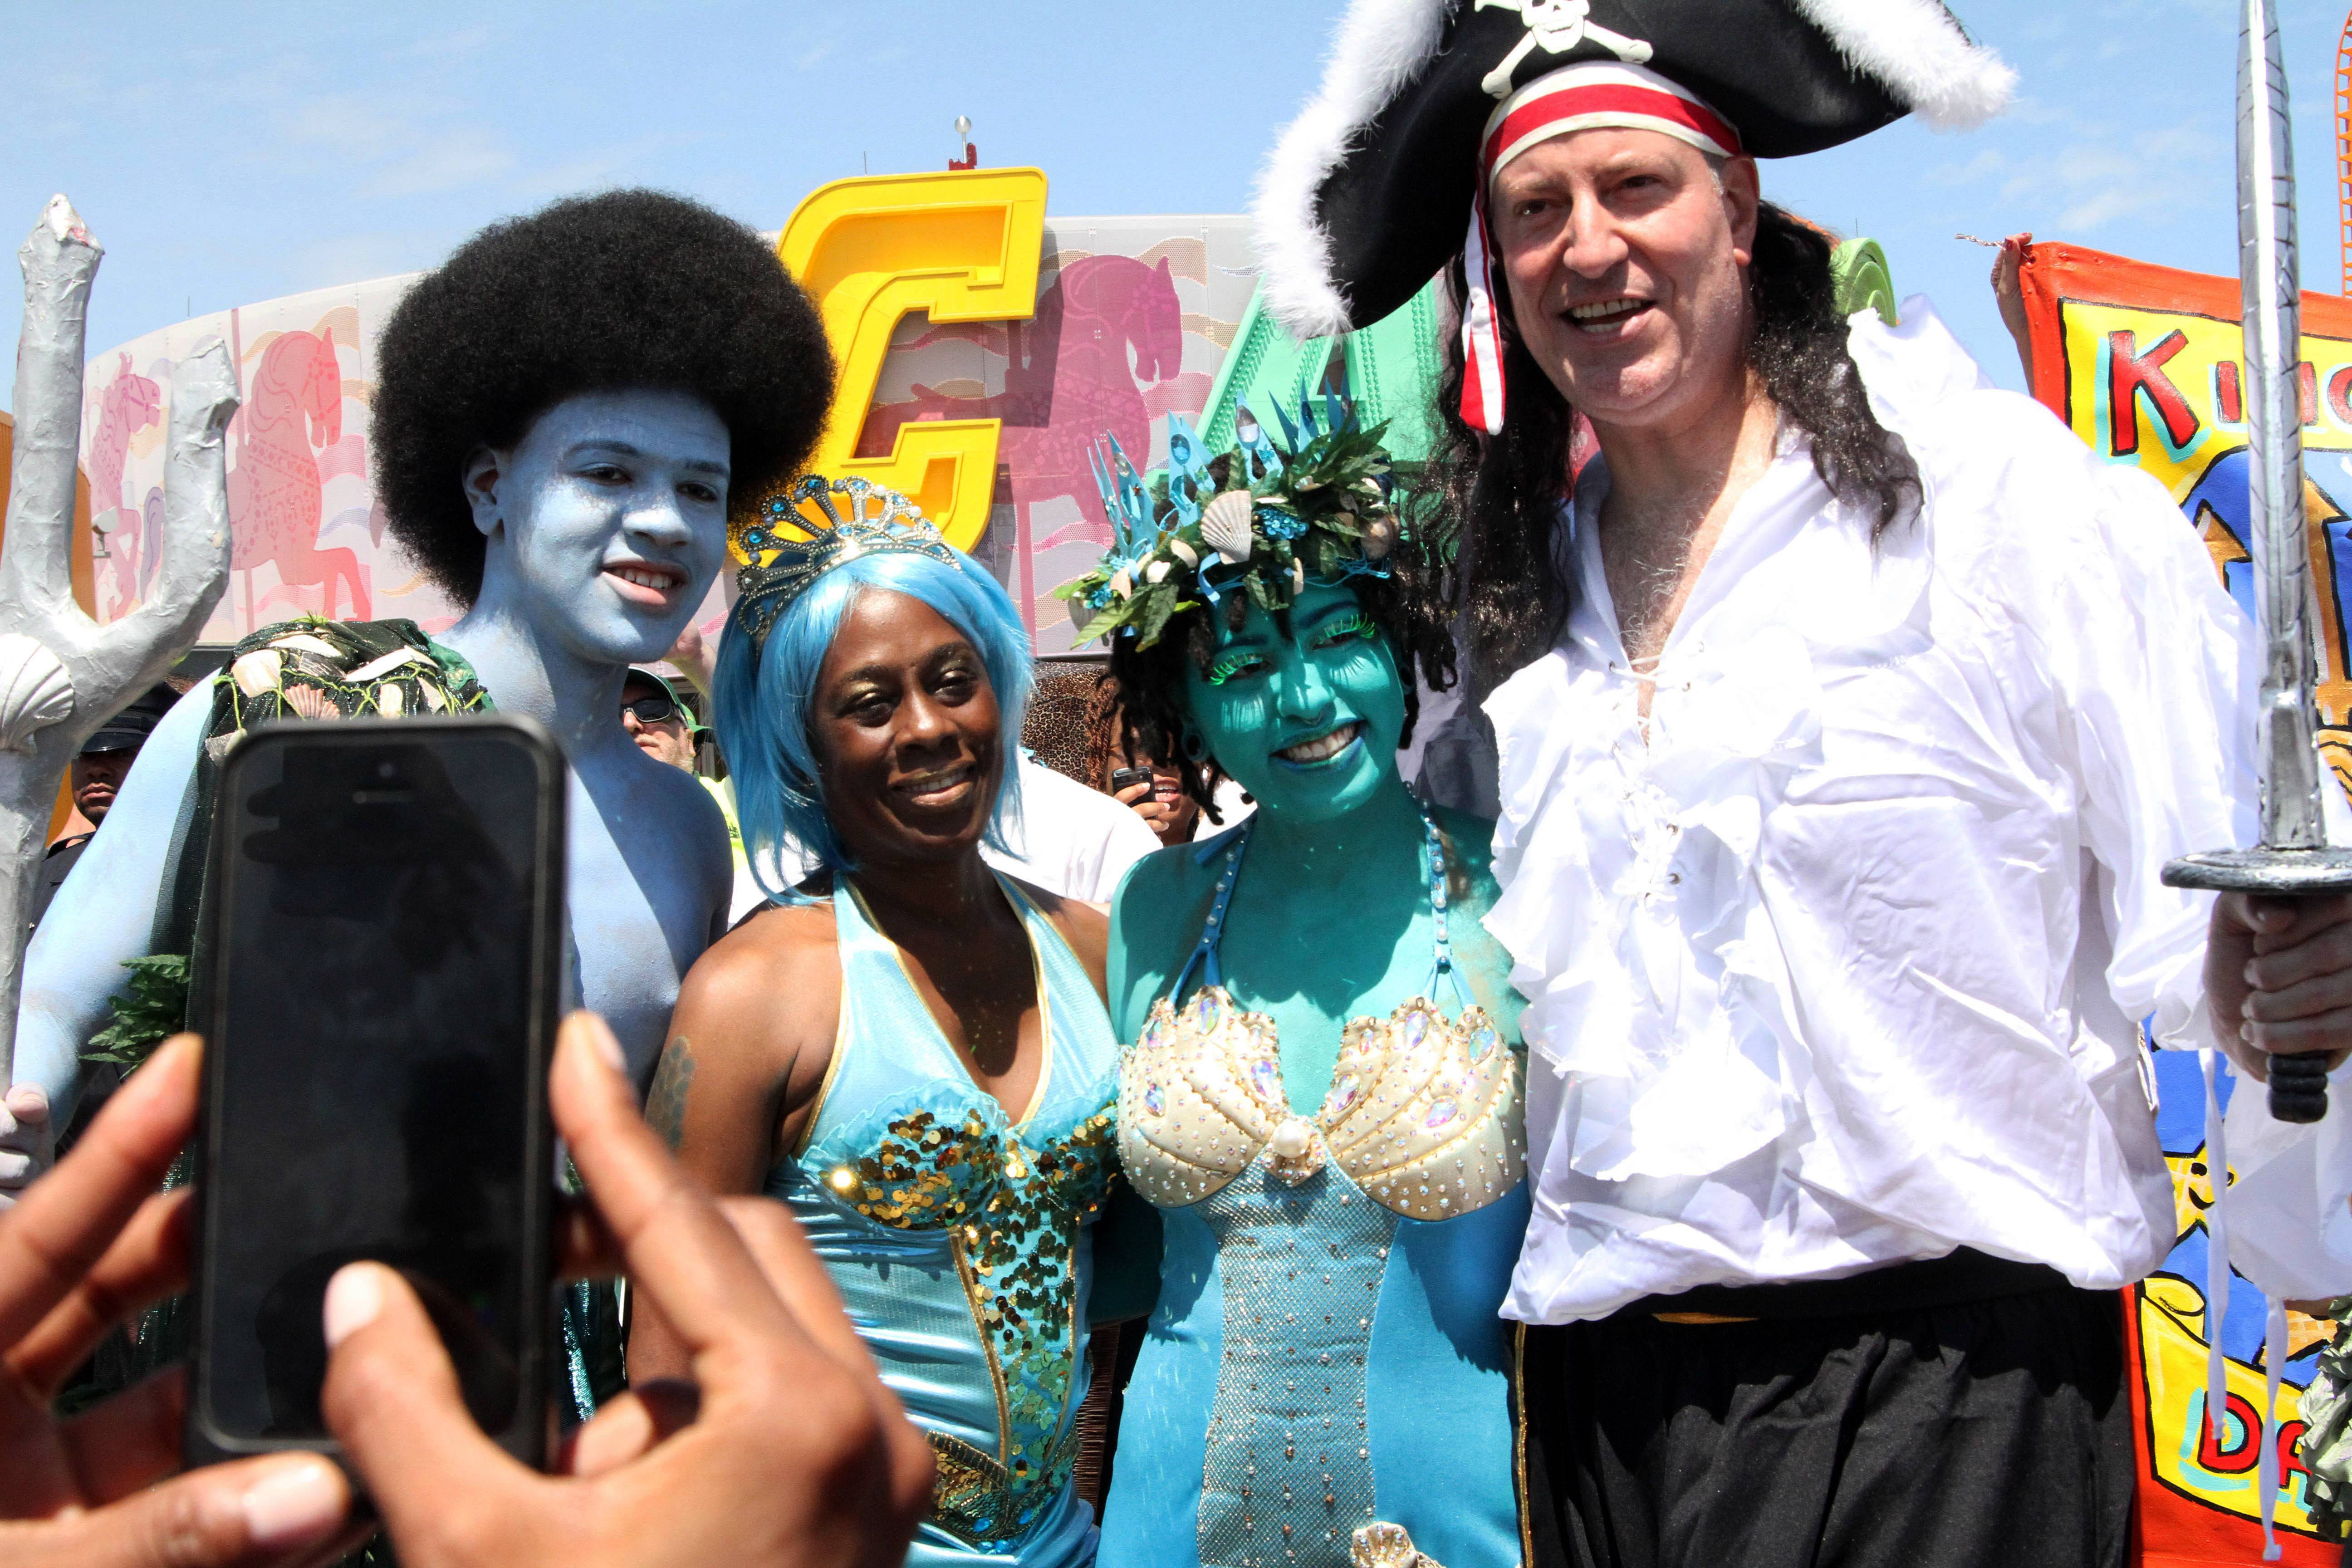 Mayor Bill de Blasio, right, and his wife Chirlane McCray, second from left, pose for a photograph Saturday with their children Dante de Blasio, left, and Chiara de Blasio as they take part in the Mermaid Parade in the Coney Island section of the Brooklyn borough of New York.